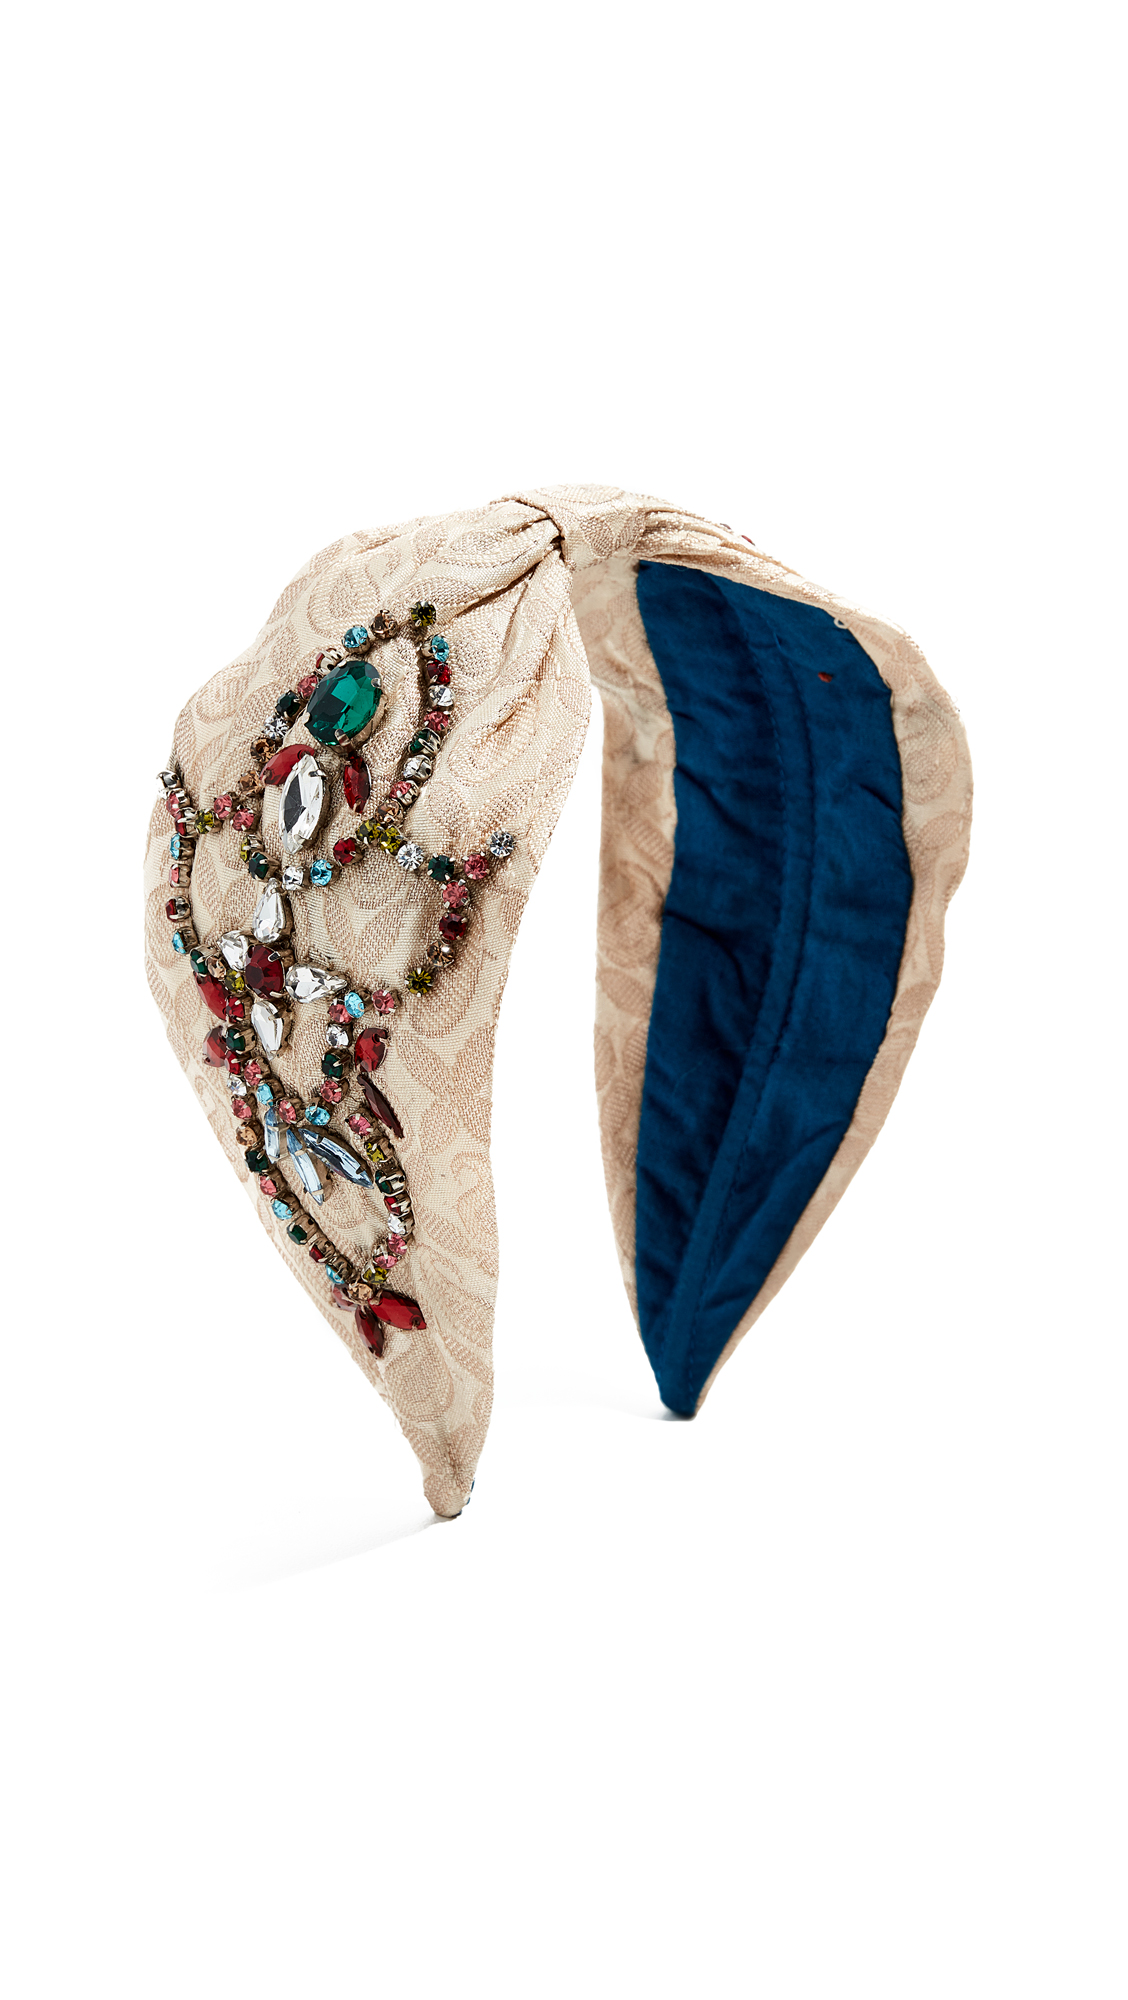 NAMJOSH Jewel Tone Embellished Headband in Off White